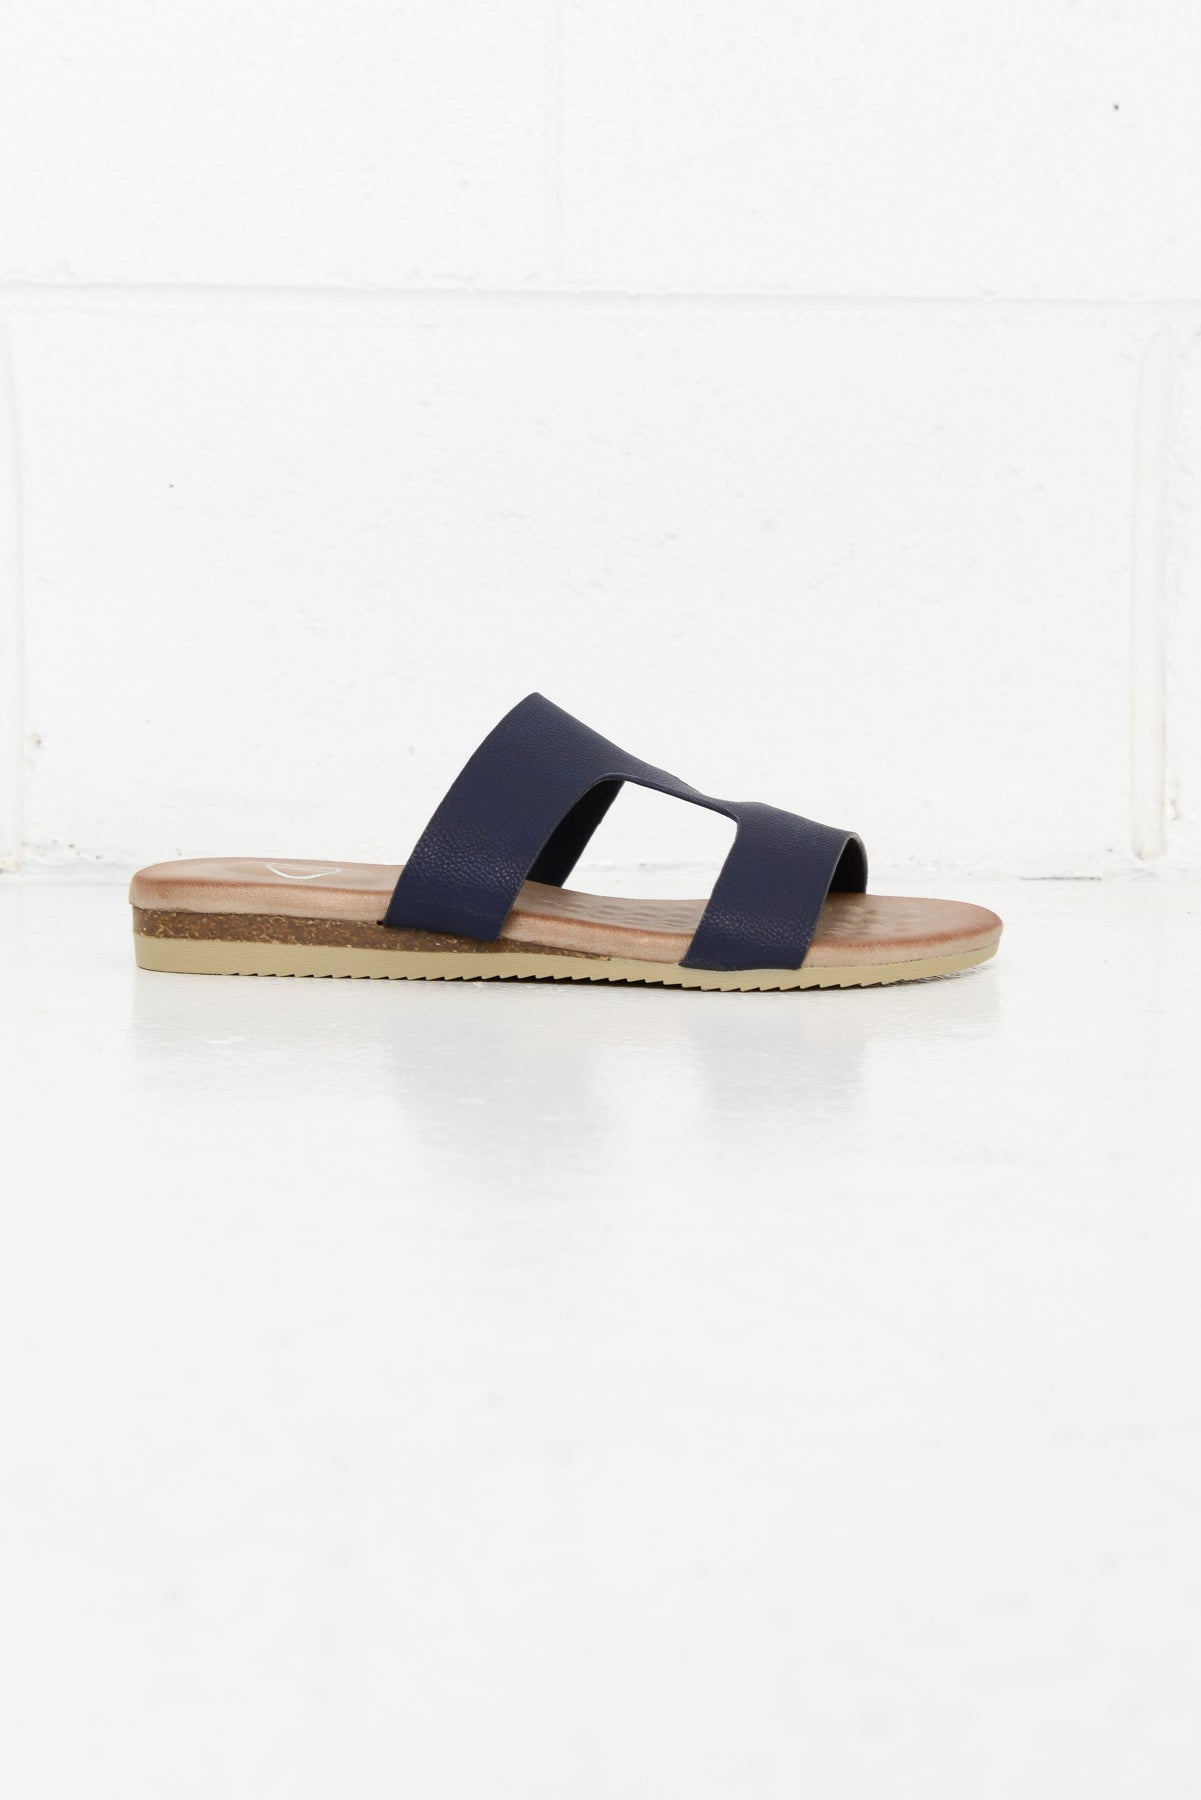 Kupi Navy Slide